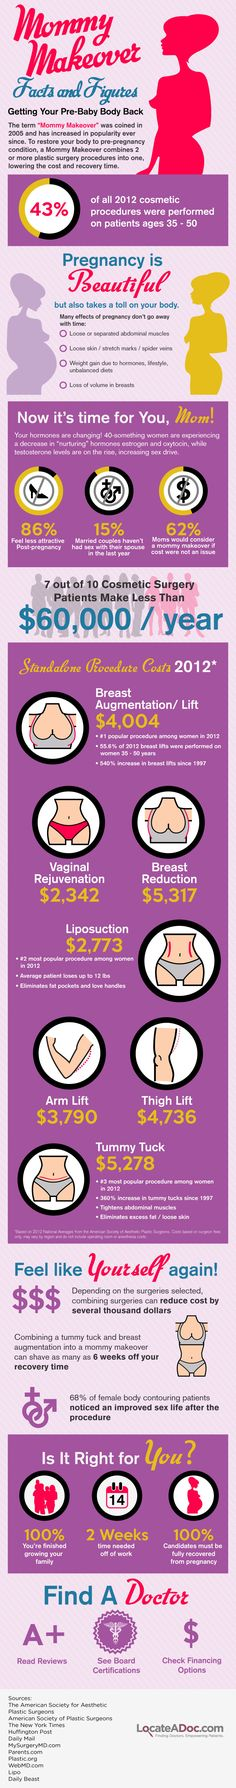 Infographic: Mommy Makeover Cost, Facts, and Figures #mommymakeover #raleigh